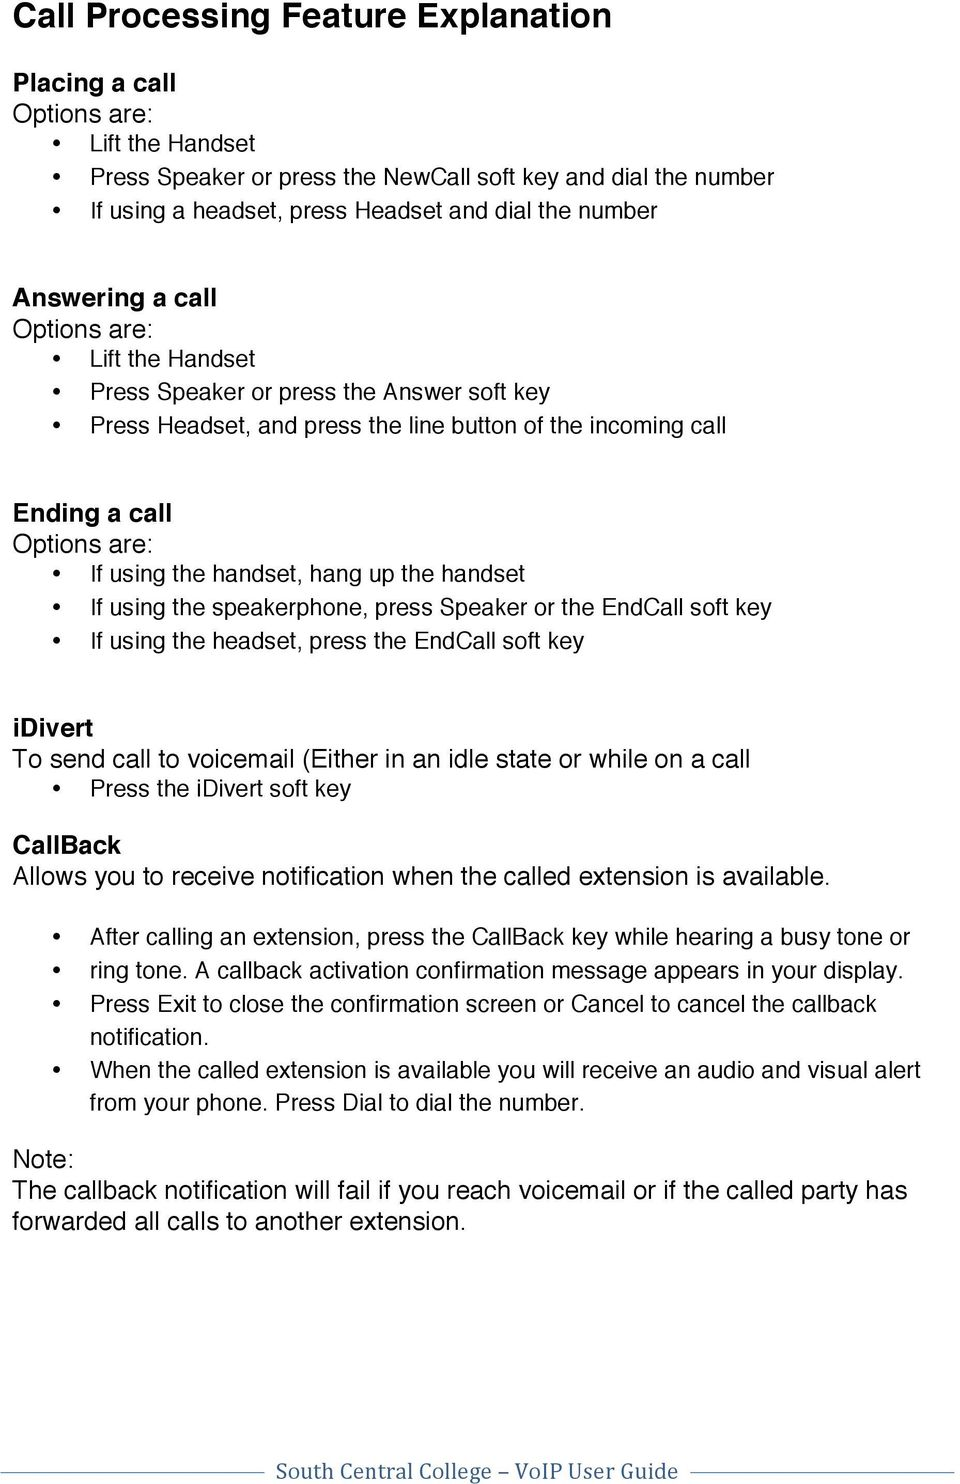 speakerphone, press Speaker or the EndCall soft key If using the headset, press the EndCall soft key idivert To send call to voicemail (Either in an idle state or while on a call Press the idivert